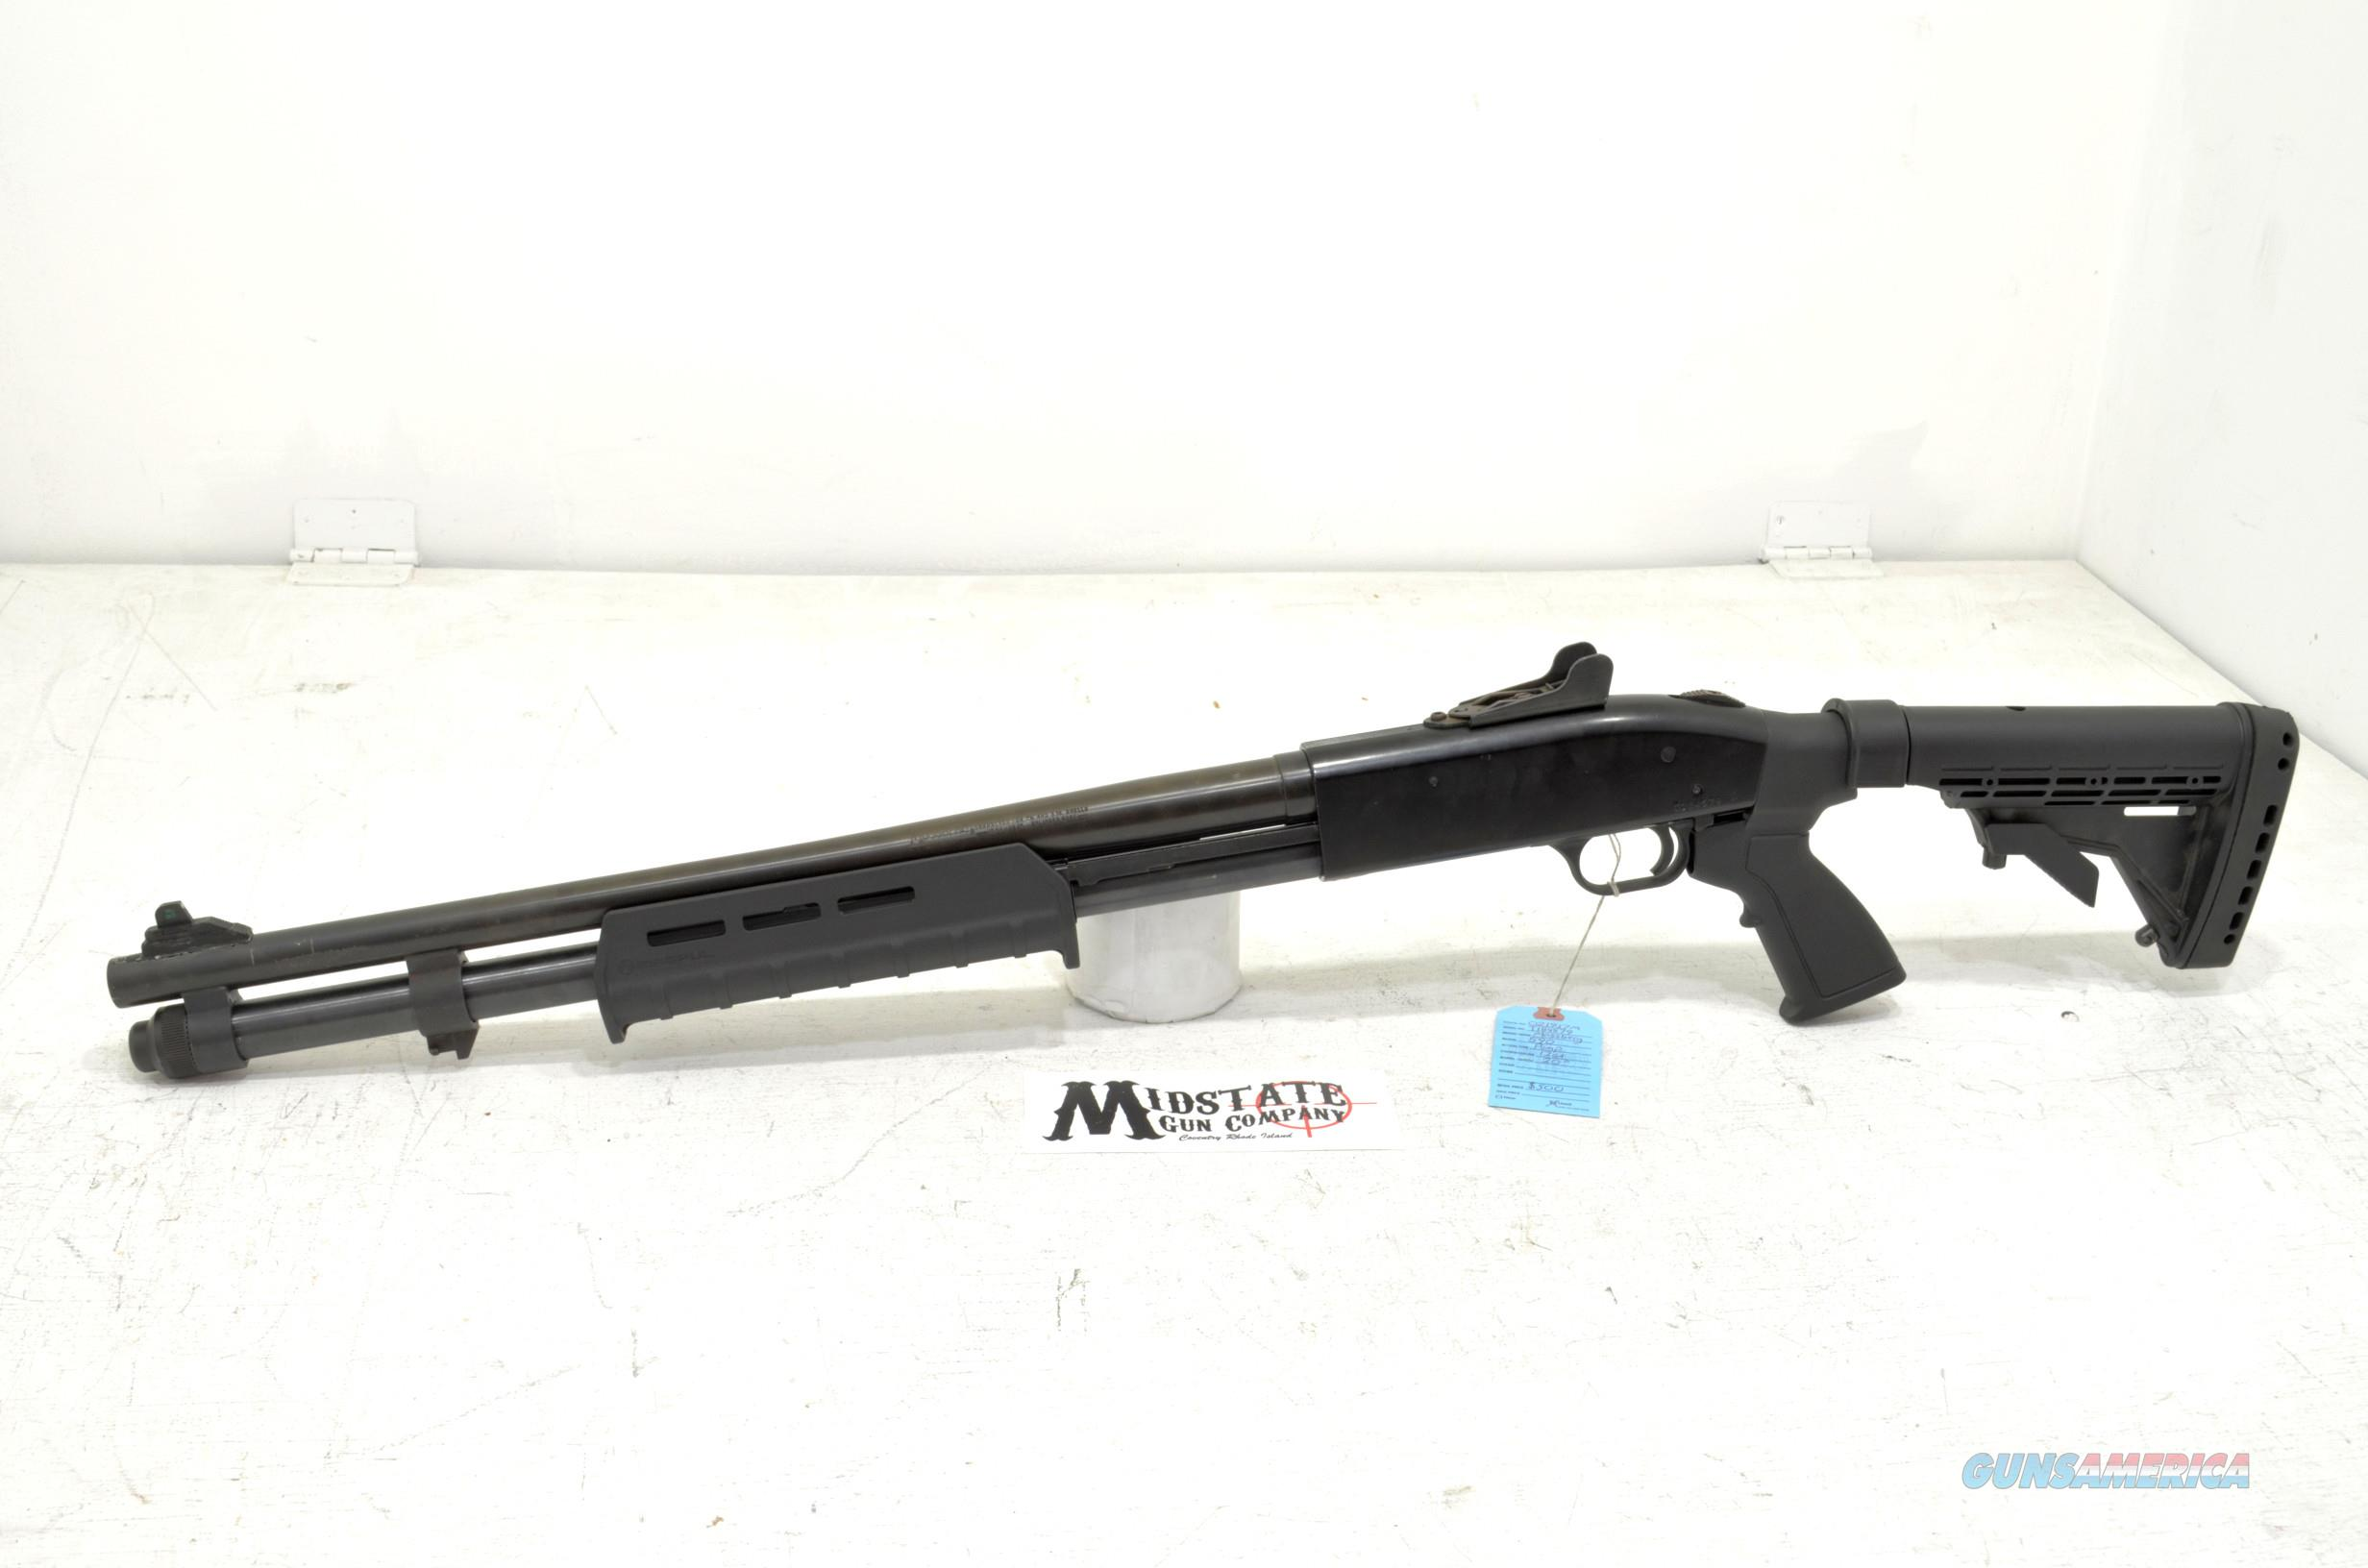 Mossberg 590 12ga Shotgun  Guns > Shotguns > Mossberg Shotguns > Pump > Tactical